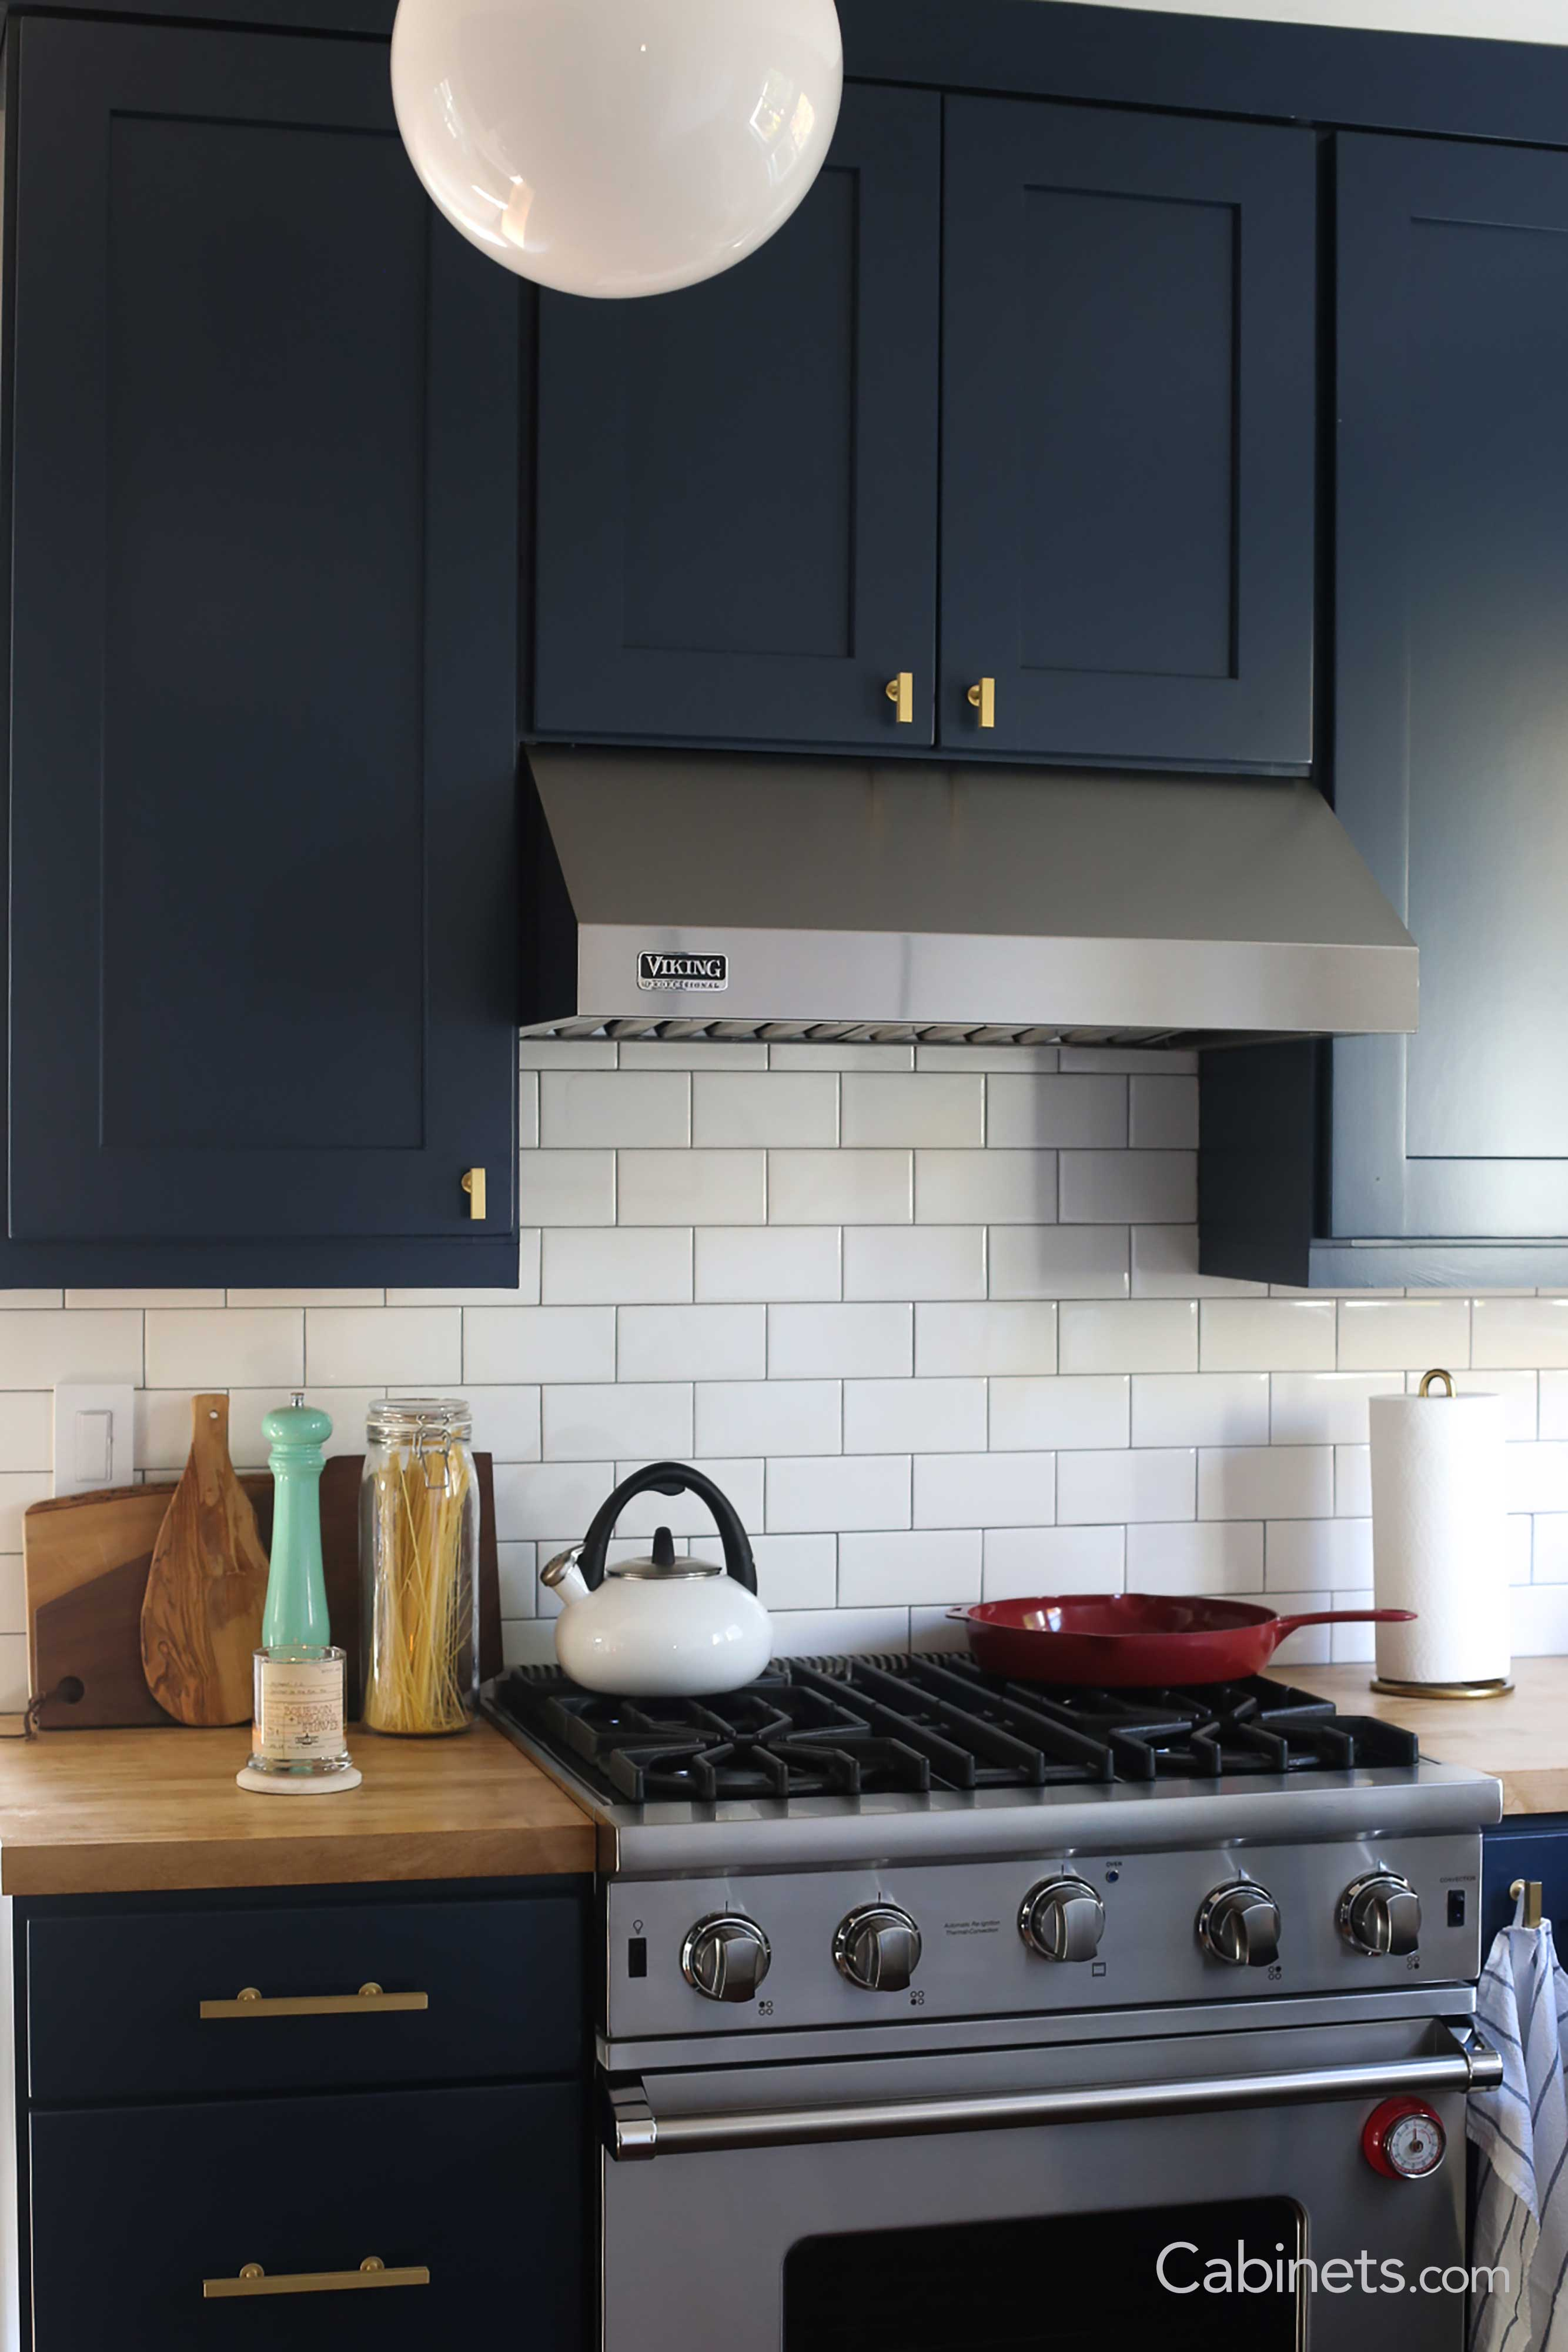 Blue Hue Painted Cabinets Cabinets Com